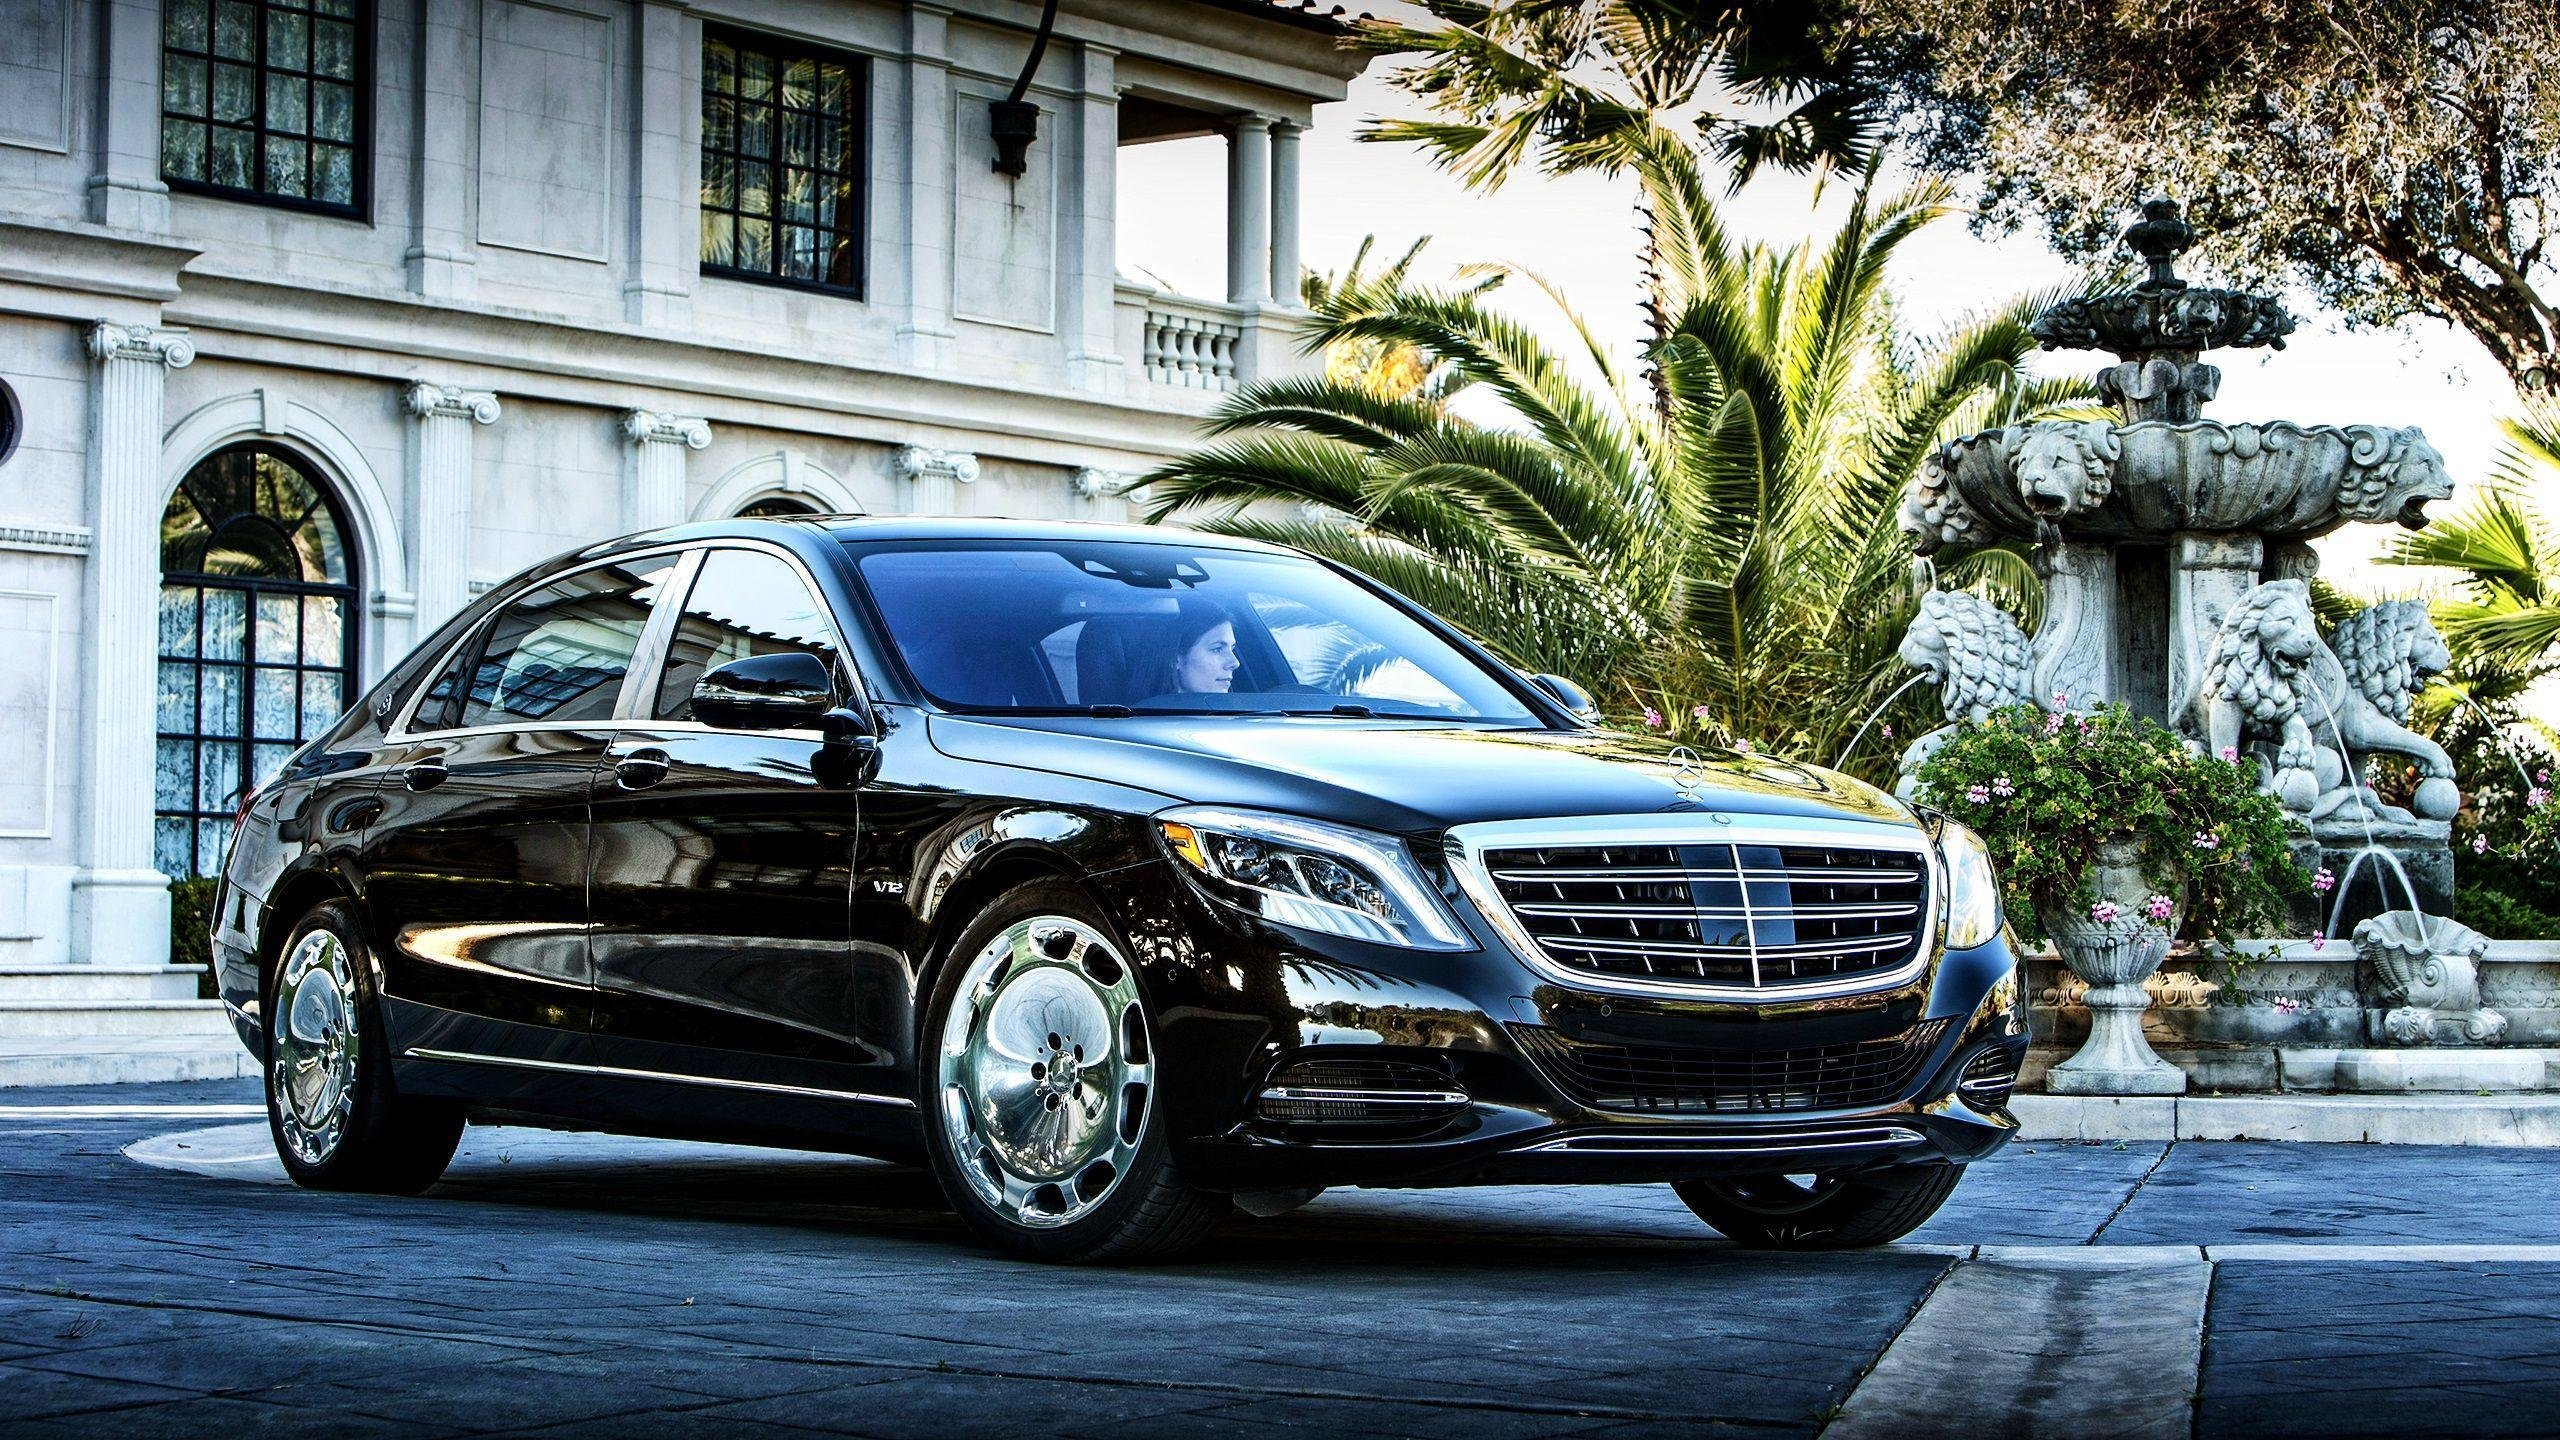 Latest Mercedes Maybach S600 Sedan Wallpapers Wallpaper Cave Free Download